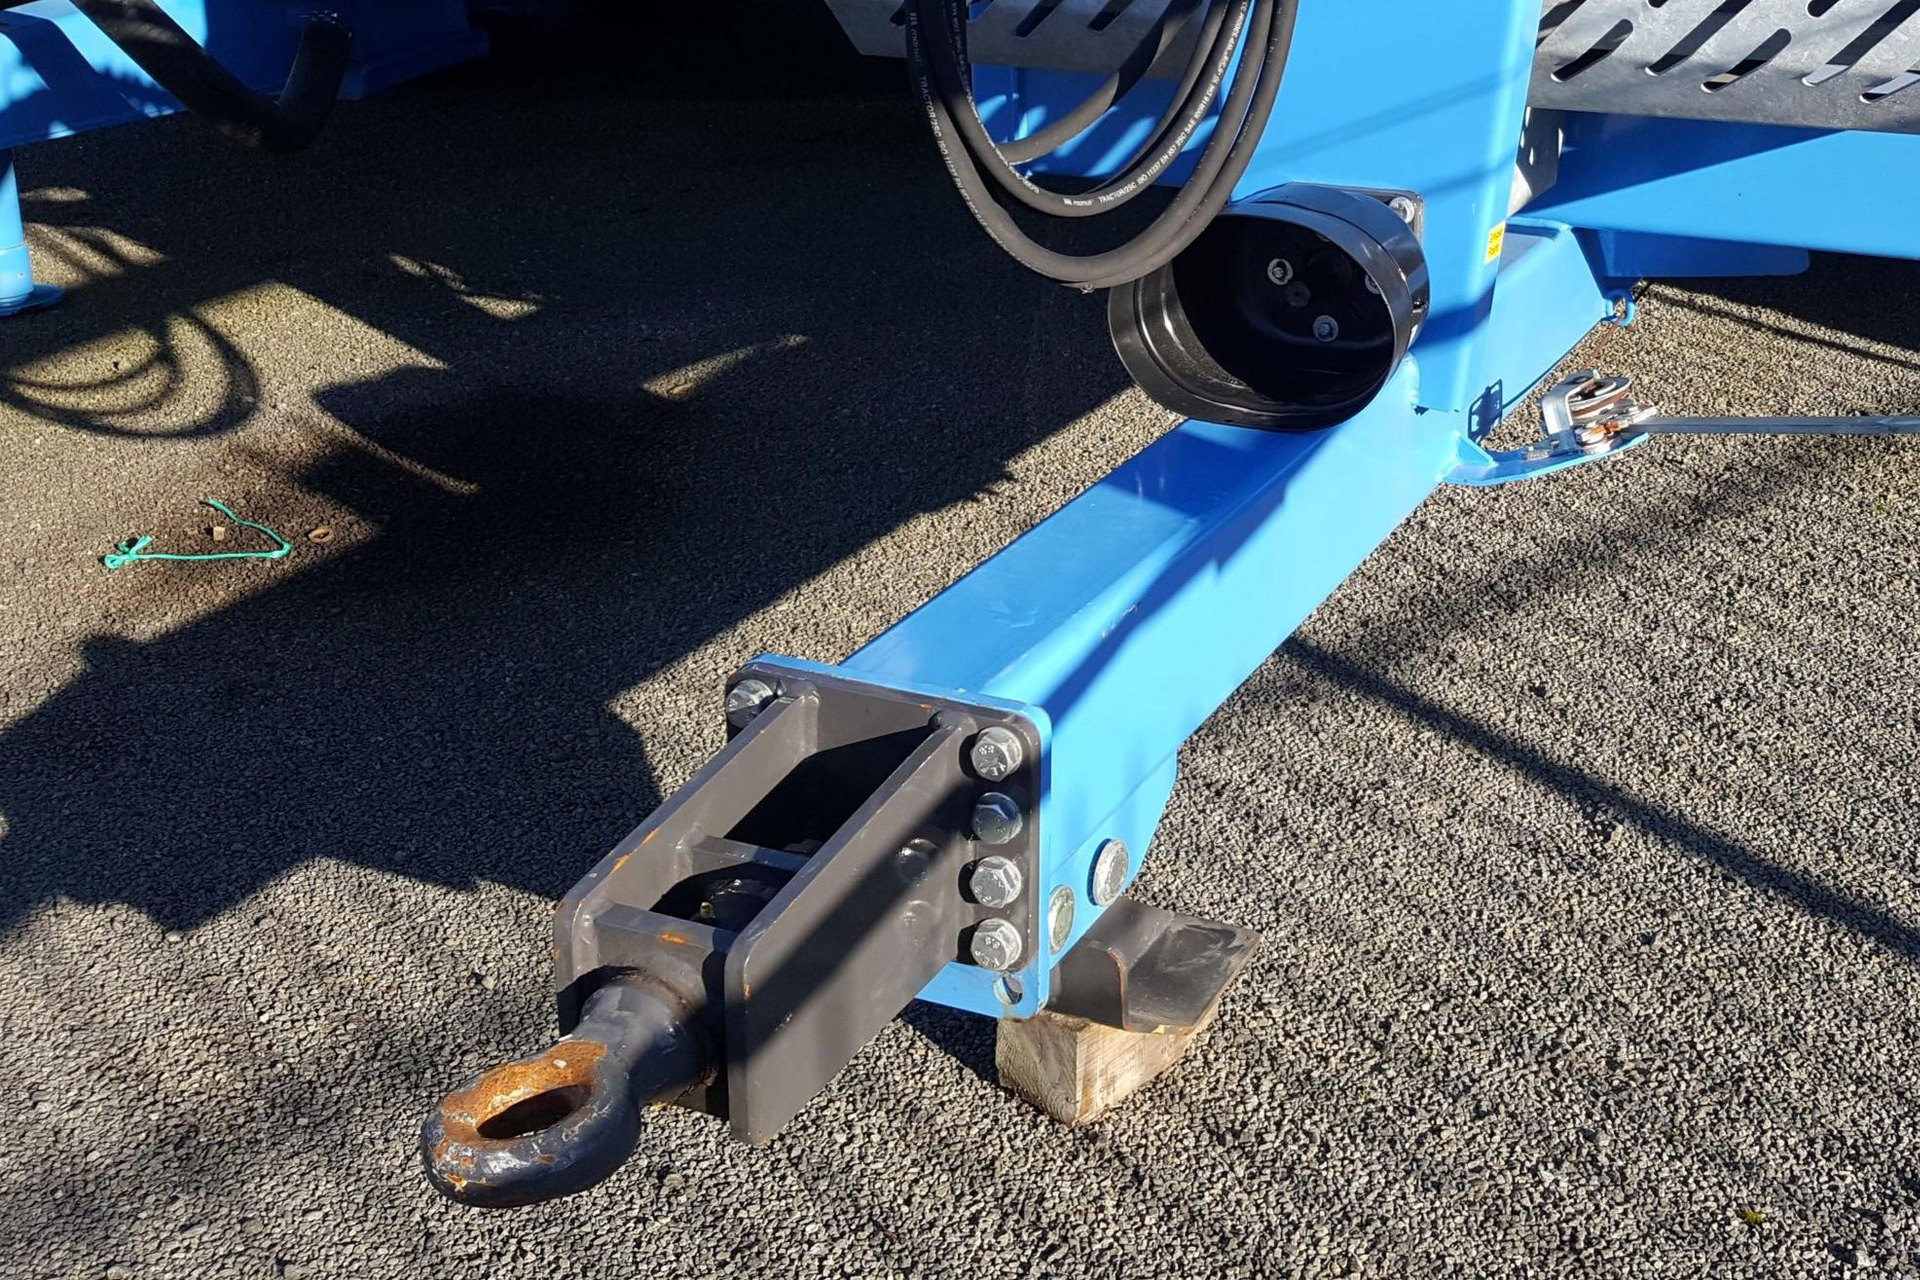 Narrow drawbar for tight turning and suspension ensures a good ride